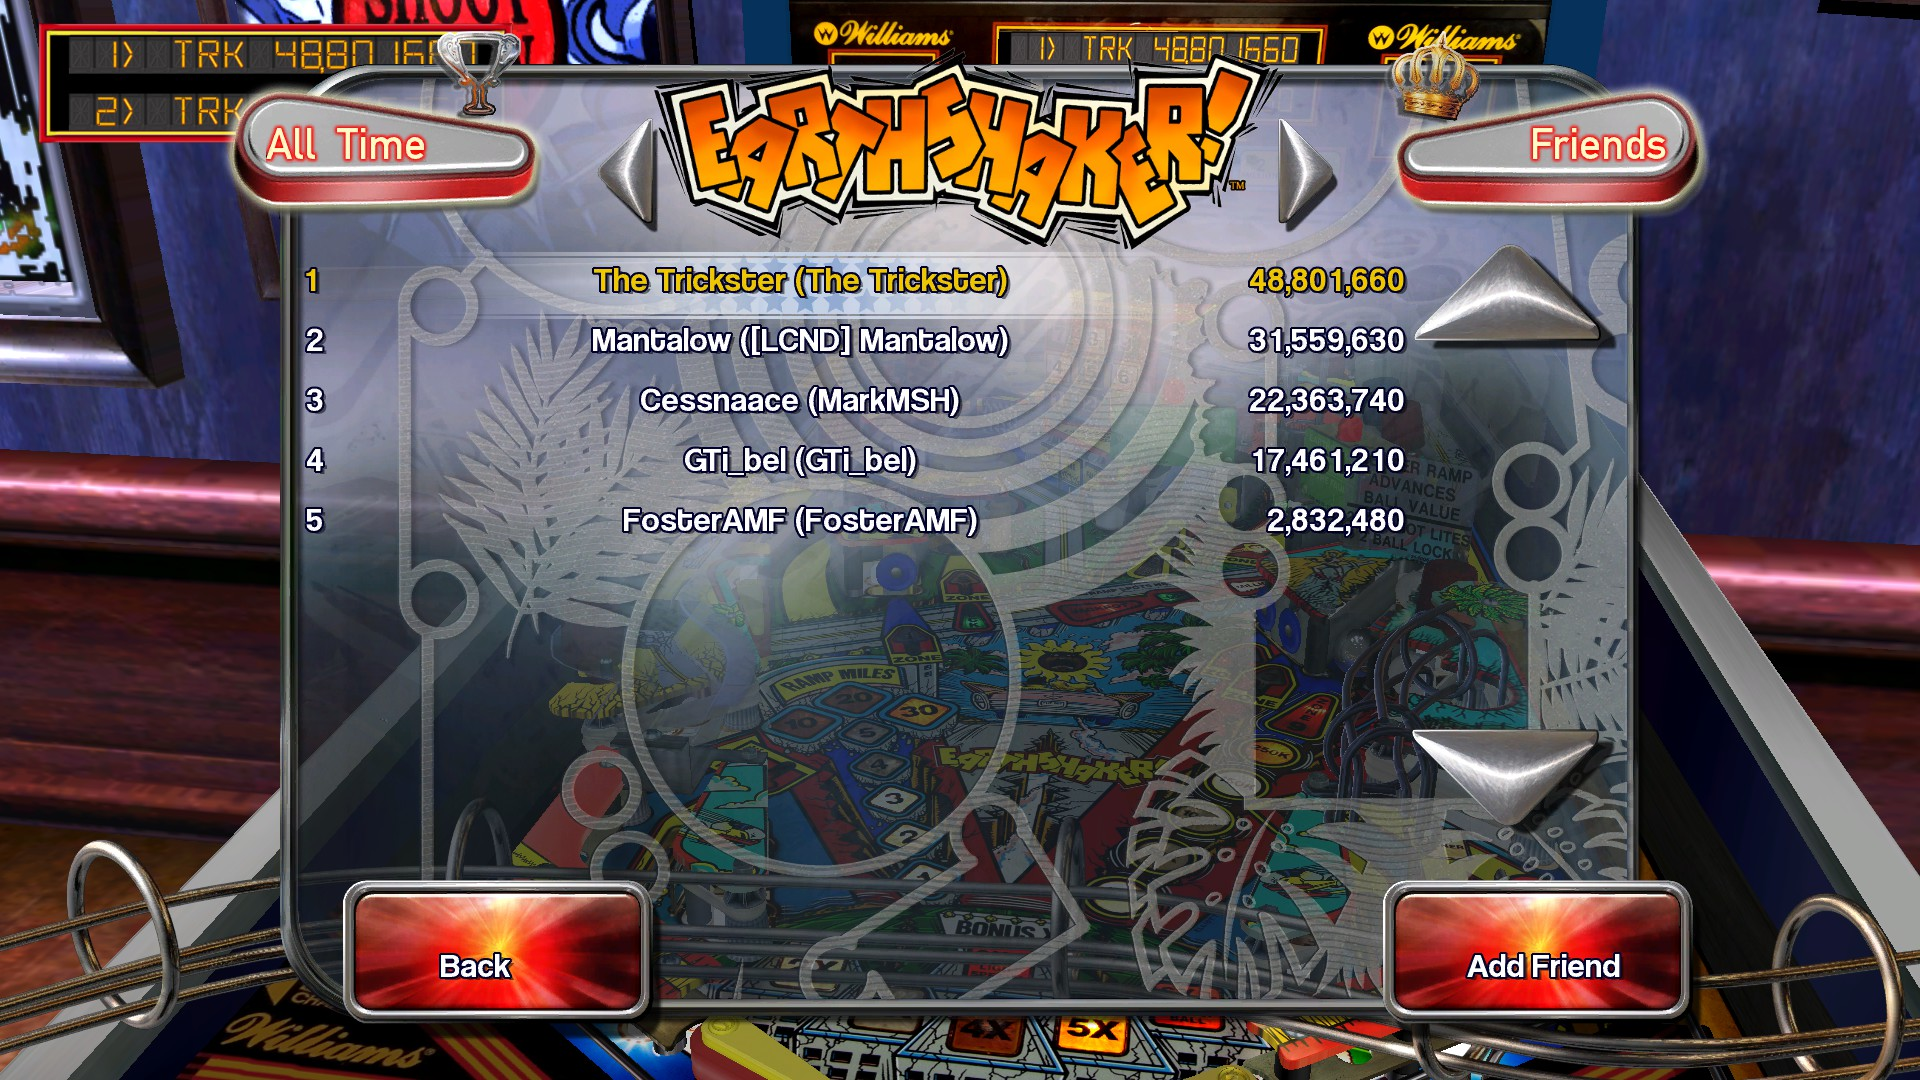 TheTrickster: Pinball Arcade: Earthshaker (PC) 48,801,660 points on 2016-03-05 21:47:02